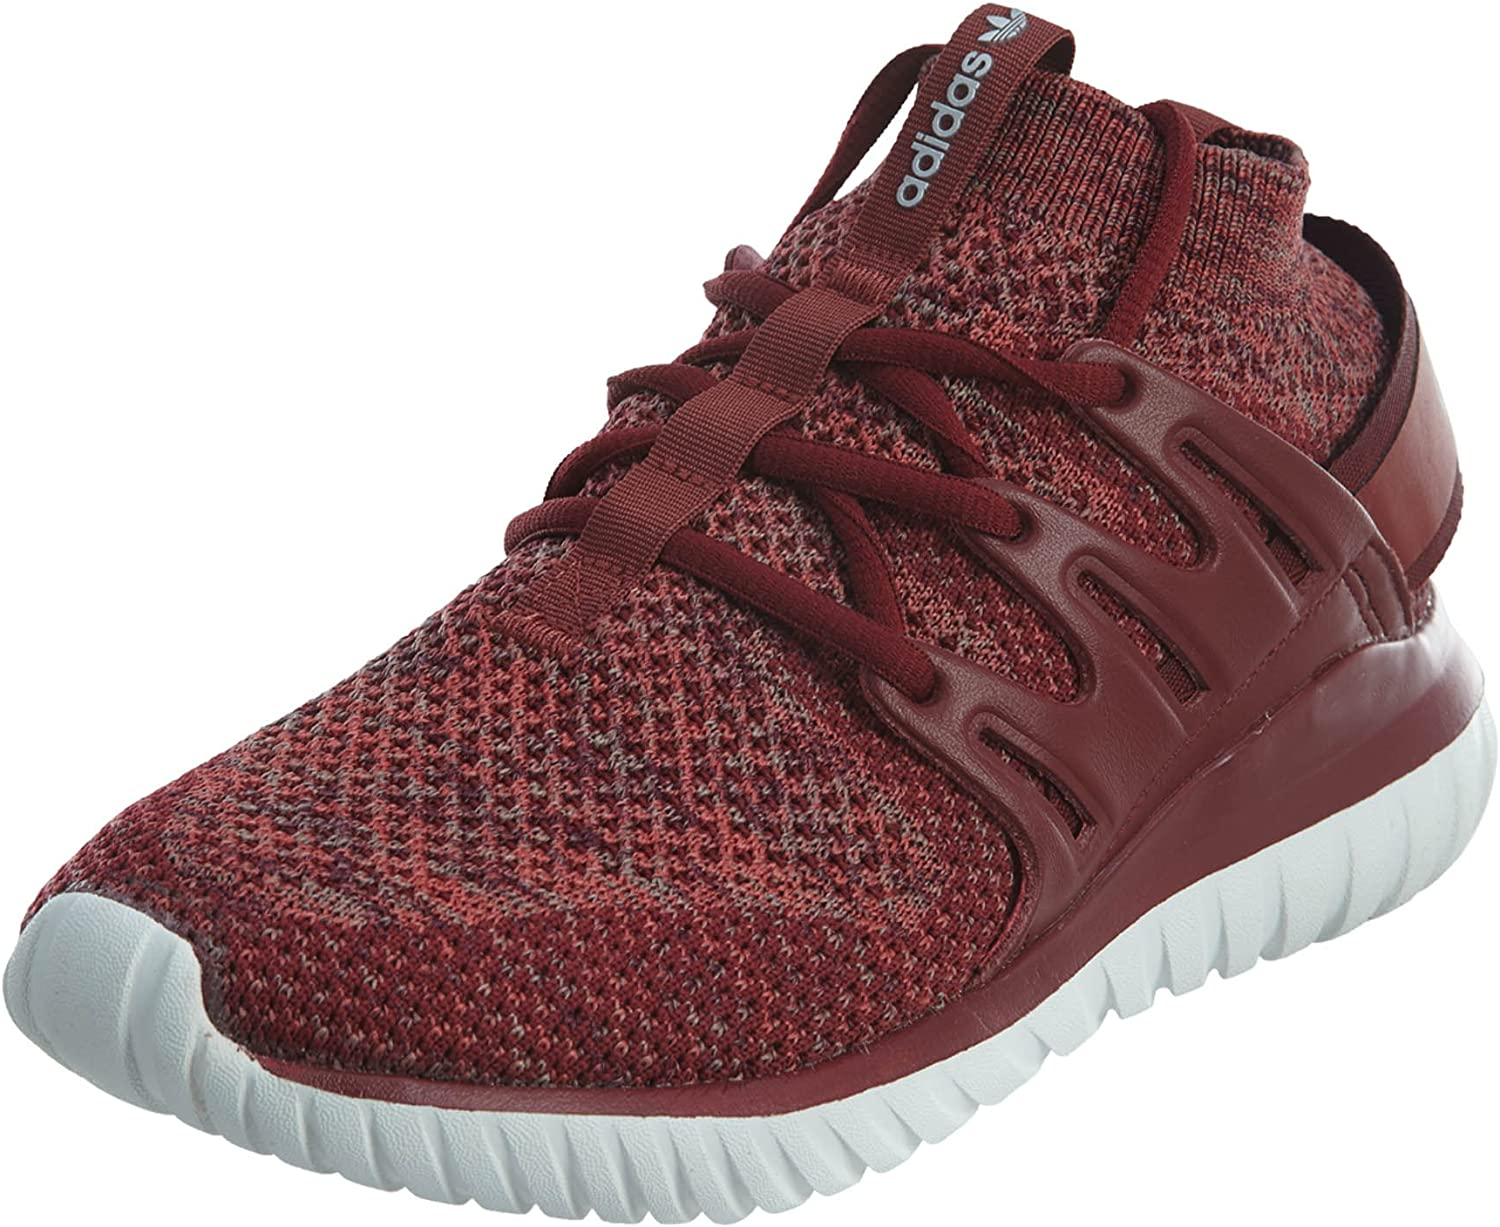 adidas Originals Mens Tubular Nova PK Lifestyle Performance Fashion Sneakers